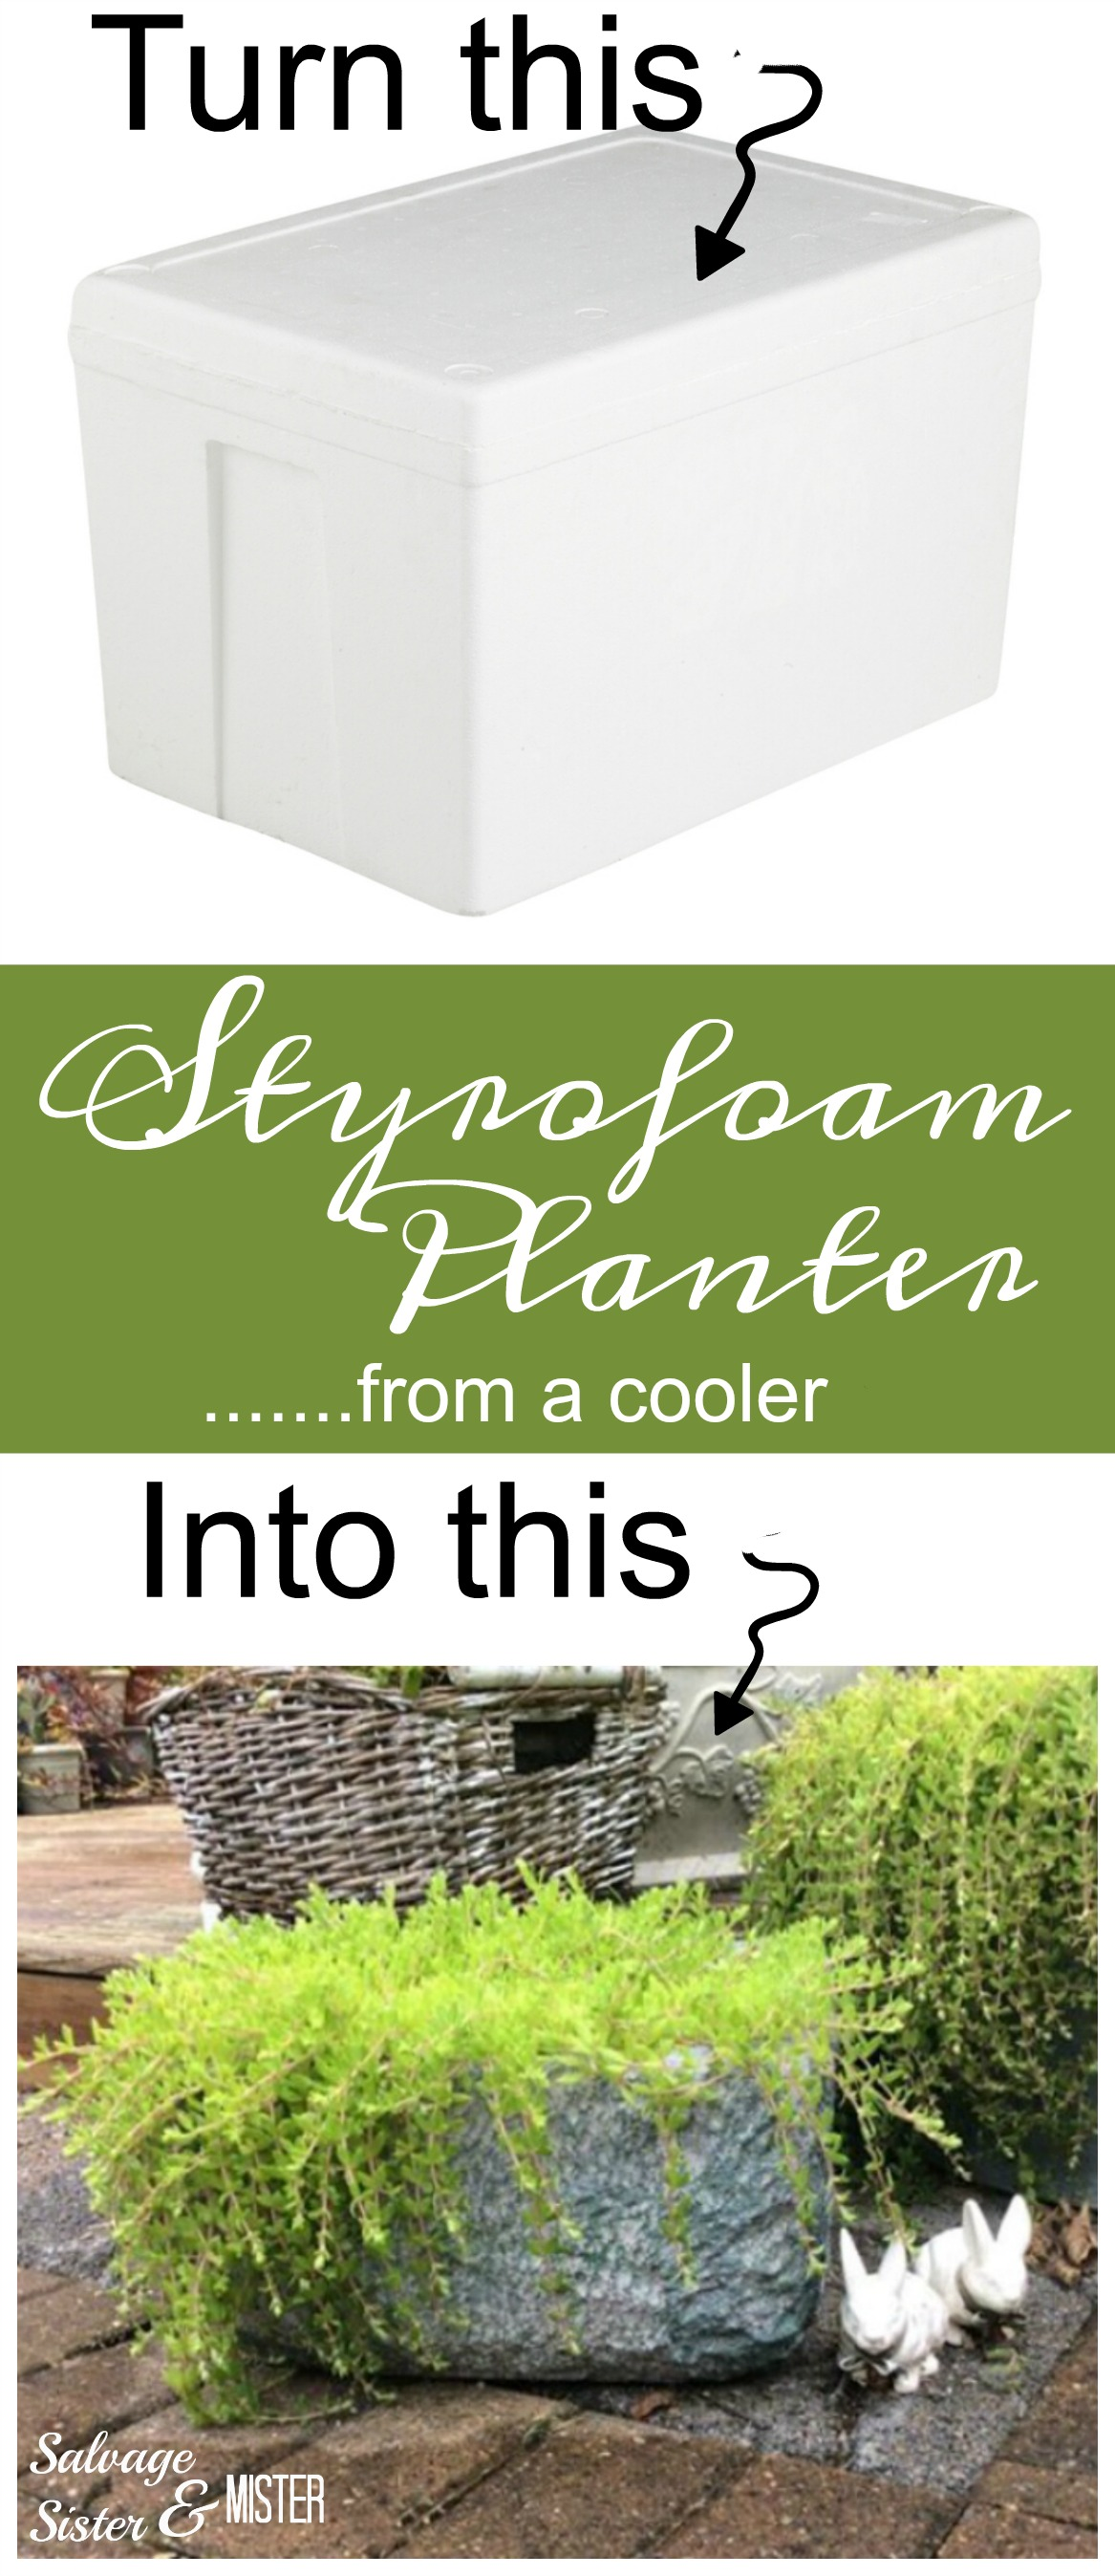 A food cooler turned into a styrofoam planter. Perfect for the backyard and a great reuse (waste not/want not). An easy diy project to repurpose or upcycle those inexpensive coolers so they don't get thrown away.